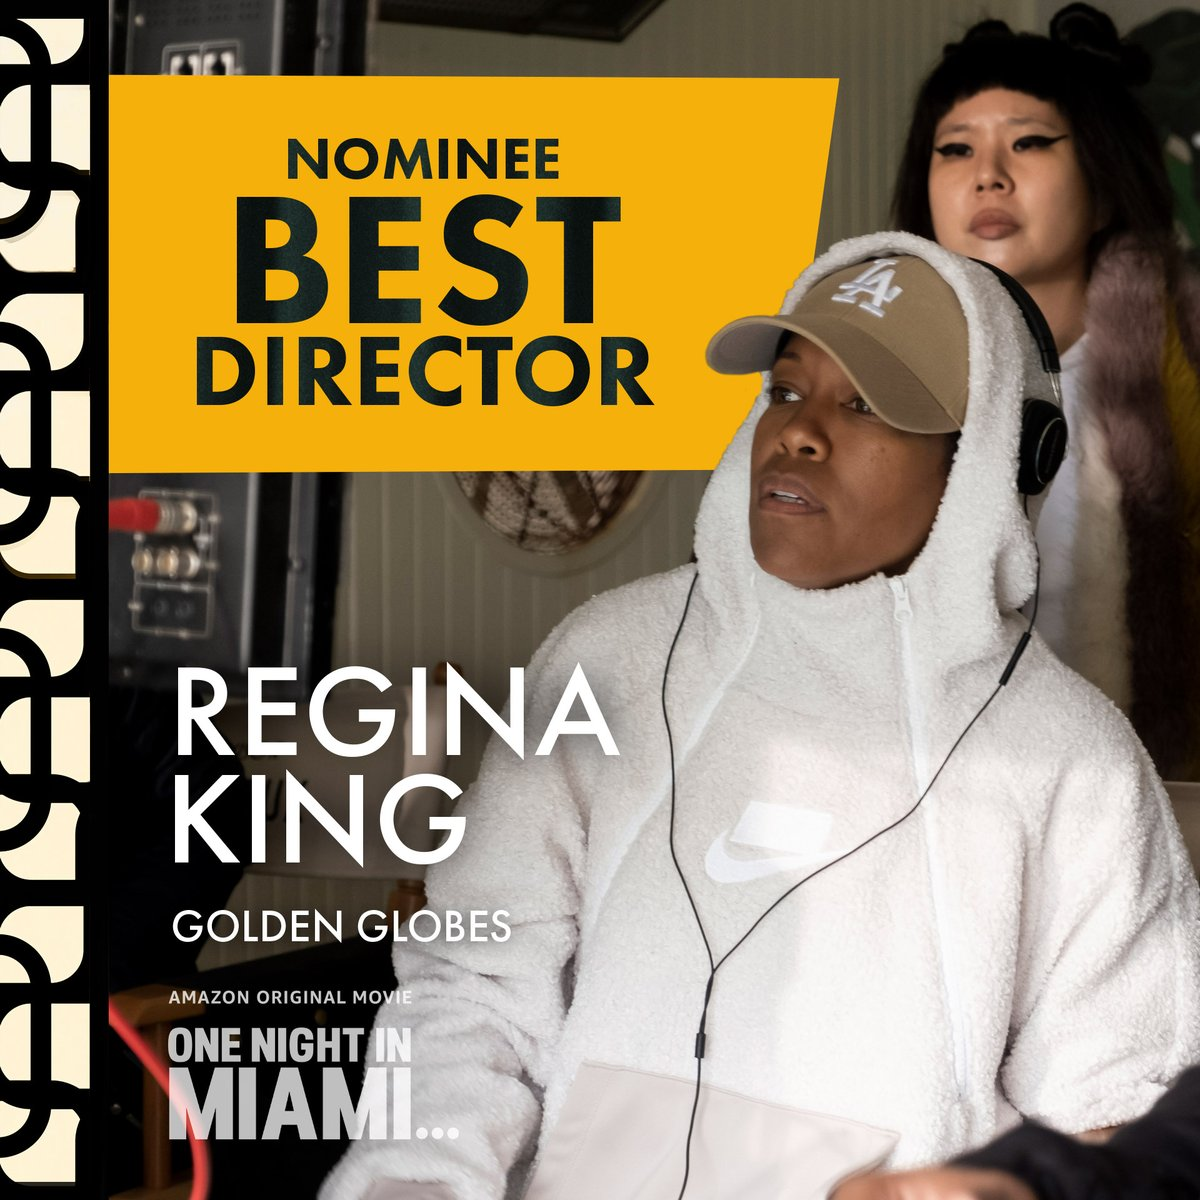 It's #GoldenGlobes time! Congratulations to @ReginaKing for her Best Director, Motion Picture nomination for One Night in Miami!